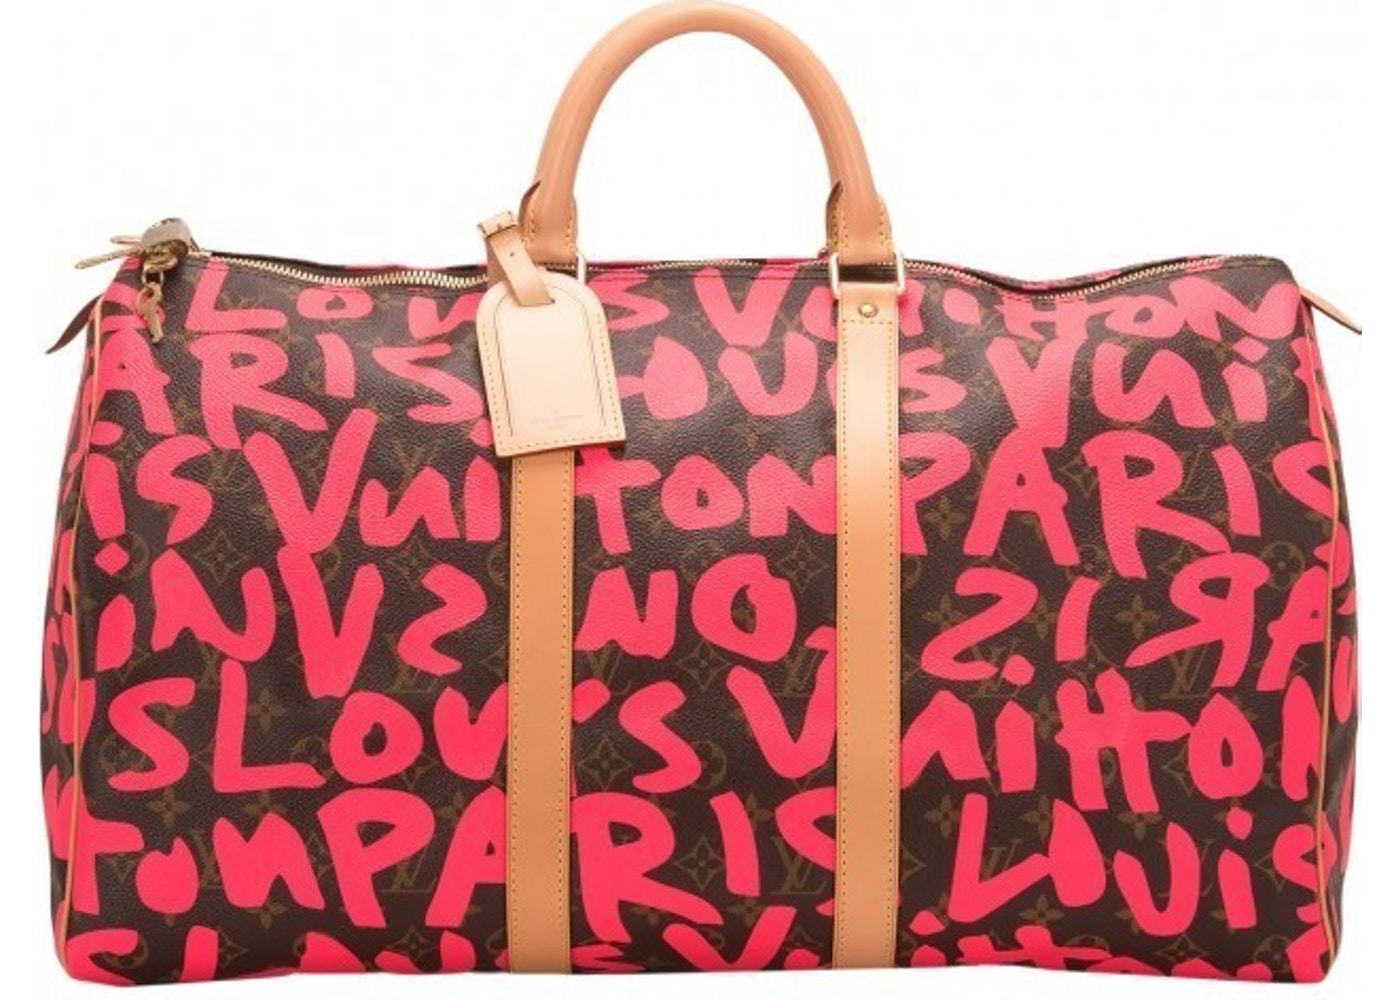 4c84d4b933238 Louis Vuitton Keepall Stephen Sprouse Monogram Graffiti 50 Brown ...